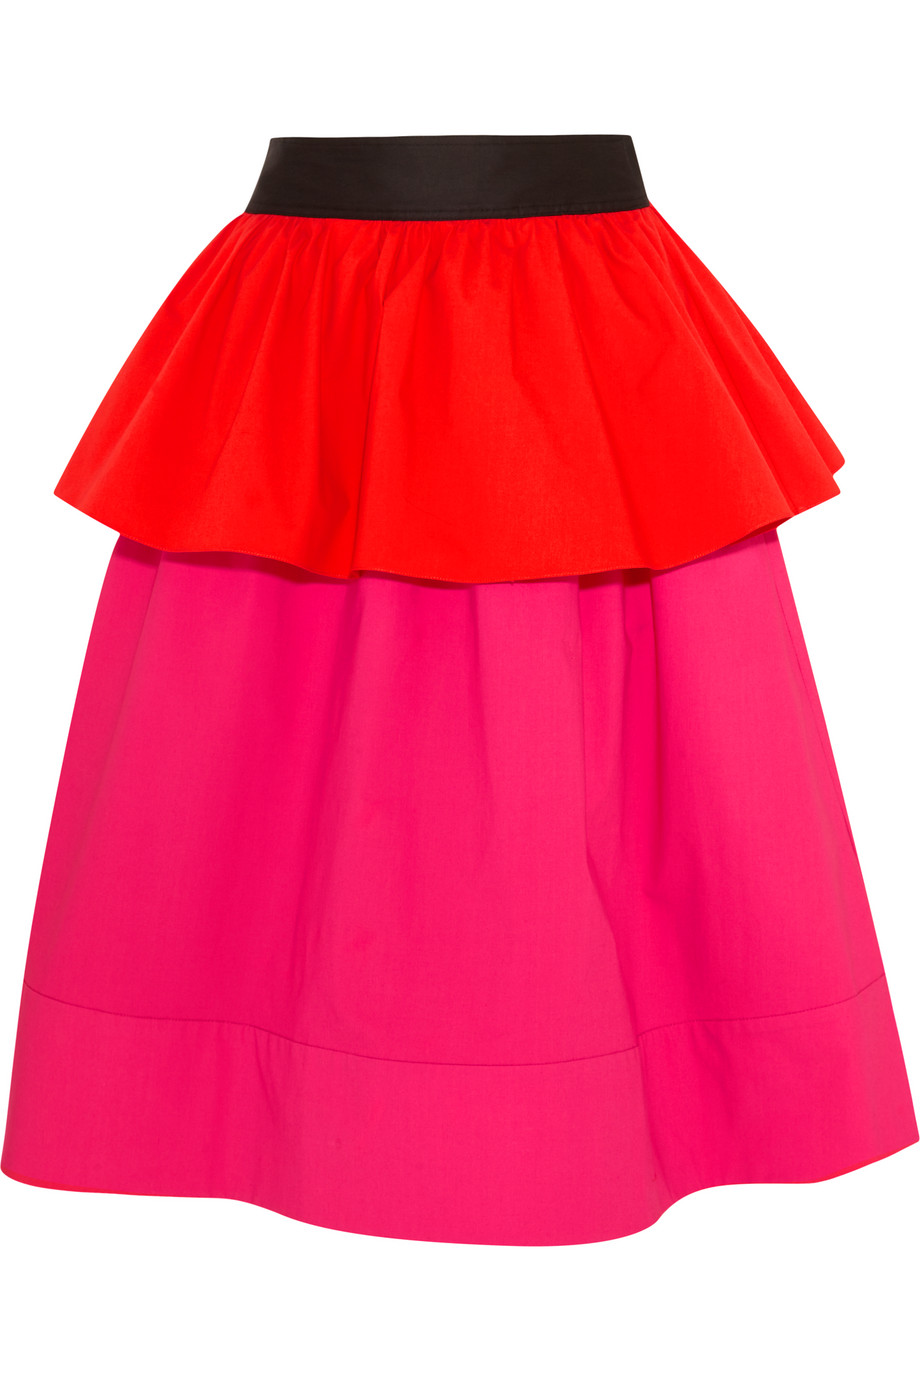 Isa Arfen Ruffled Color-Block Stretch-Cotton Poplin Skirt, Pink/Red, Women's, Size: 10